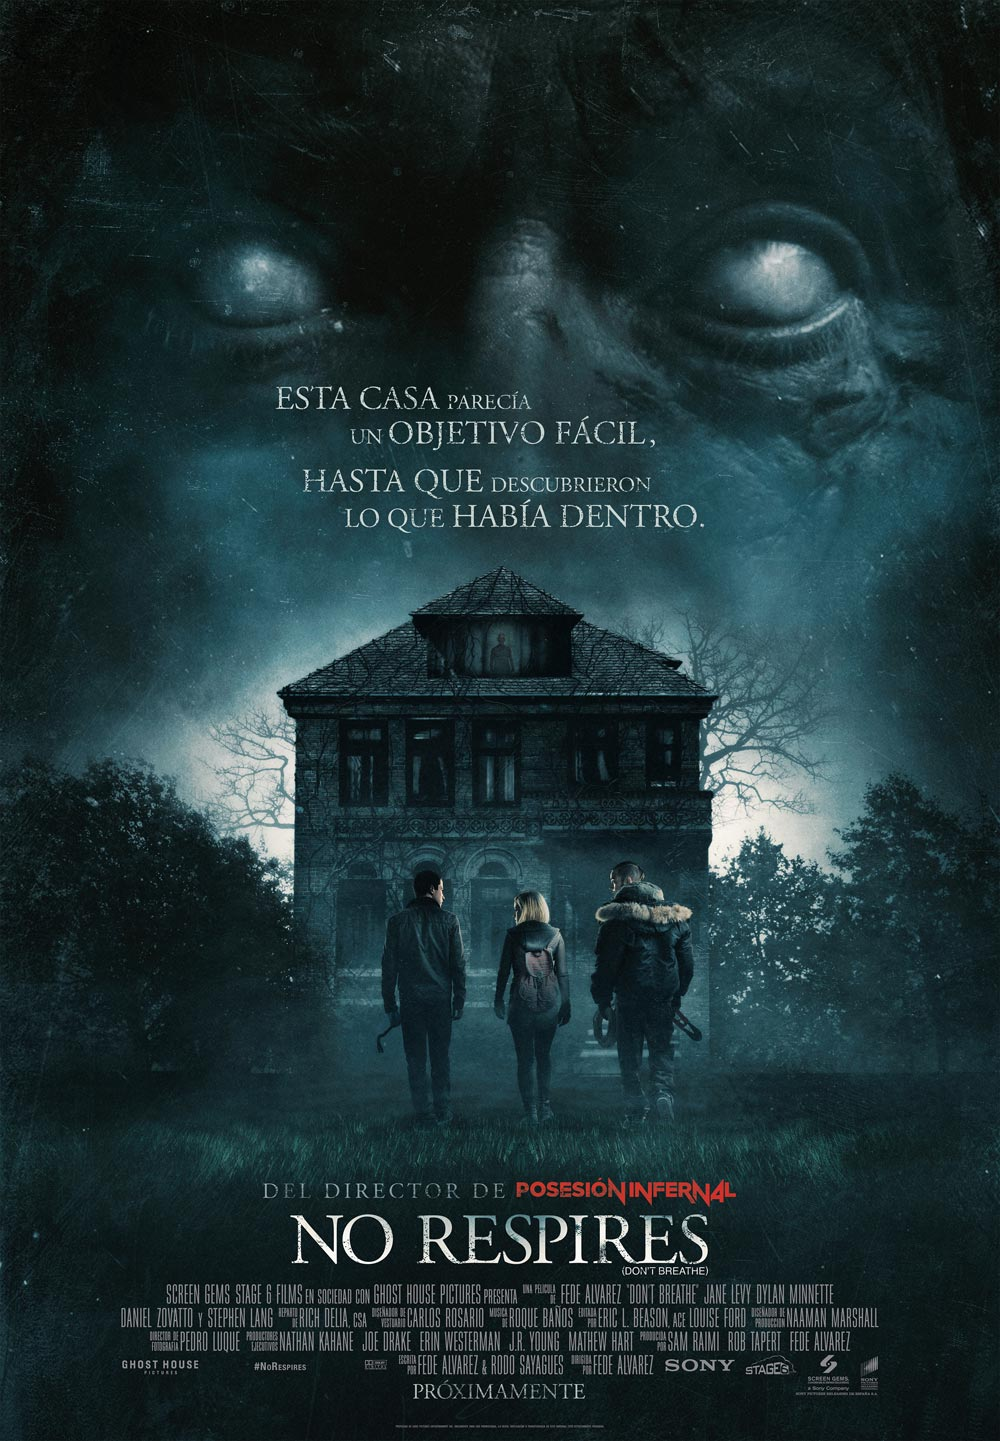 No respires (Don't Breathe)